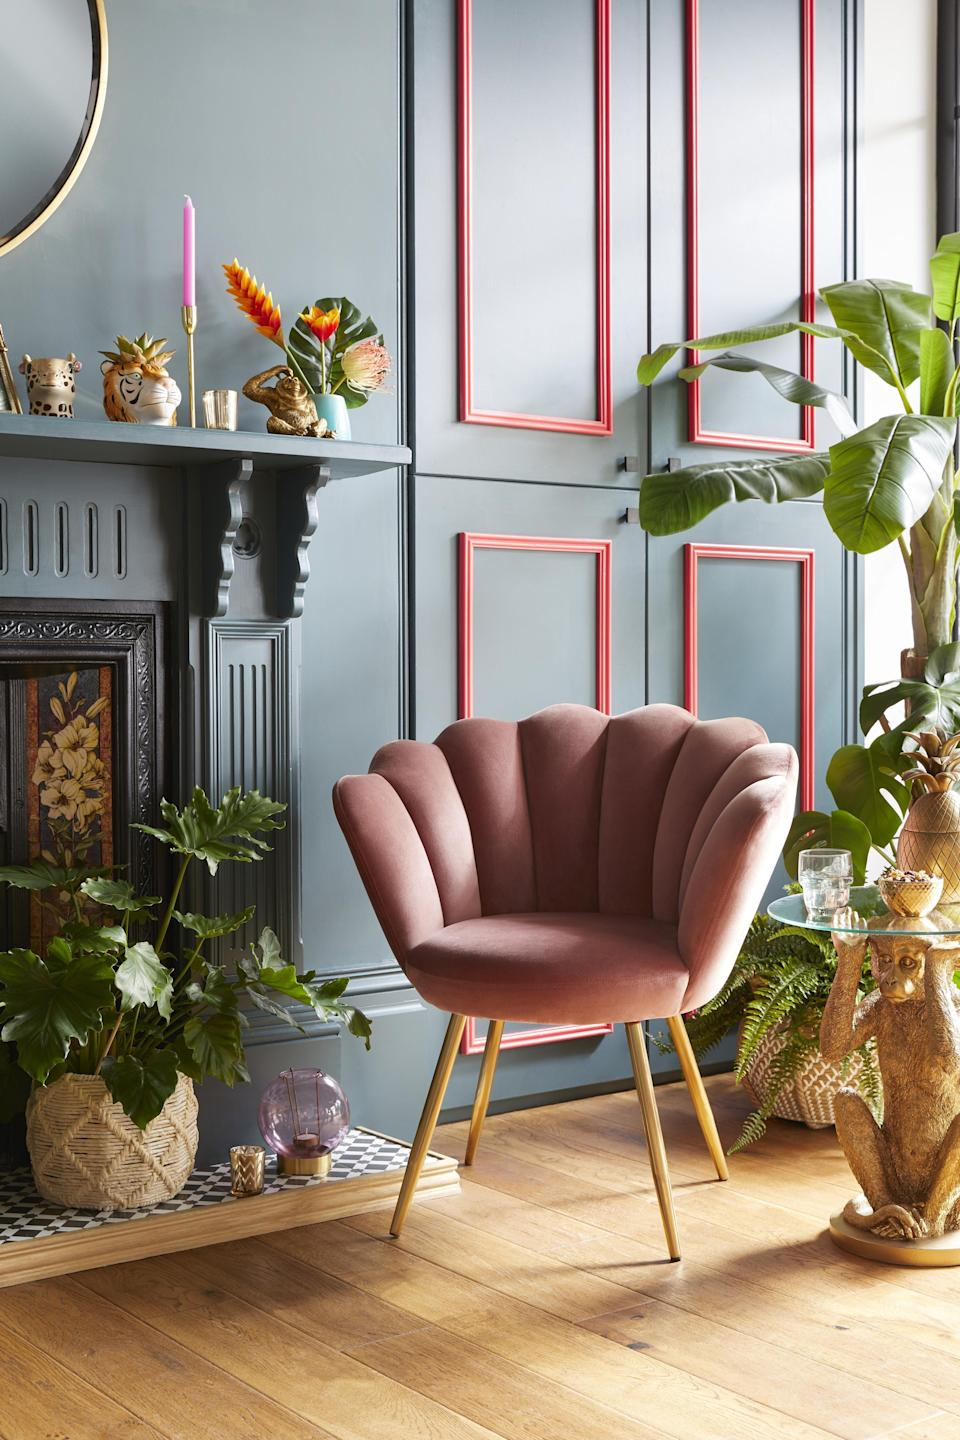 """<p><b>Dunelm has launched three <strong>spring/summer</strong> trend collections — Edited Life, Elements and Equatorial — to help you spruce up your space for less. </b></p><p>From eco-friendly furniture pieces to must-have <a href=""""https://www.housebeautiful.com/uk/decorate/living-room/g32357518/living-room-accessories/"""" rel=""""nofollow noopener"""" target=""""_blank"""" data-ylk=""""slk:accessories"""" class=""""link rapid-noclick-resp"""">accessories</a>, the range will add the perfect finishing touch to every interior scheme. </p><p>Sustainability is also at the heart of the new range, with the home furnishings retailer explaining that they have been working hard to provide more products that 'give customers peace of mind when it comes to shopping responsibly'. </p><p>Some of the items are available to buy now, while others will land <a href=""""https://go.redirectingat.com?id=127X1599956&url=https%3A%2F%2Fwww.dunelm.com%2F&sref=https%3A%2F%2Fwww.housebeautiful.com%2Fuk%2Flifestyle%2Fshopping%2Fg35333392%2Fdunelm-spring-summer-homeware%2F"""" rel=""""nofollow noopener"""" target=""""_blank"""" data-ylk=""""slk:online"""" class=""""link rapid-noclick-resp"""">online</a> later this month. Take a look at some of our favourites below...</p>"""